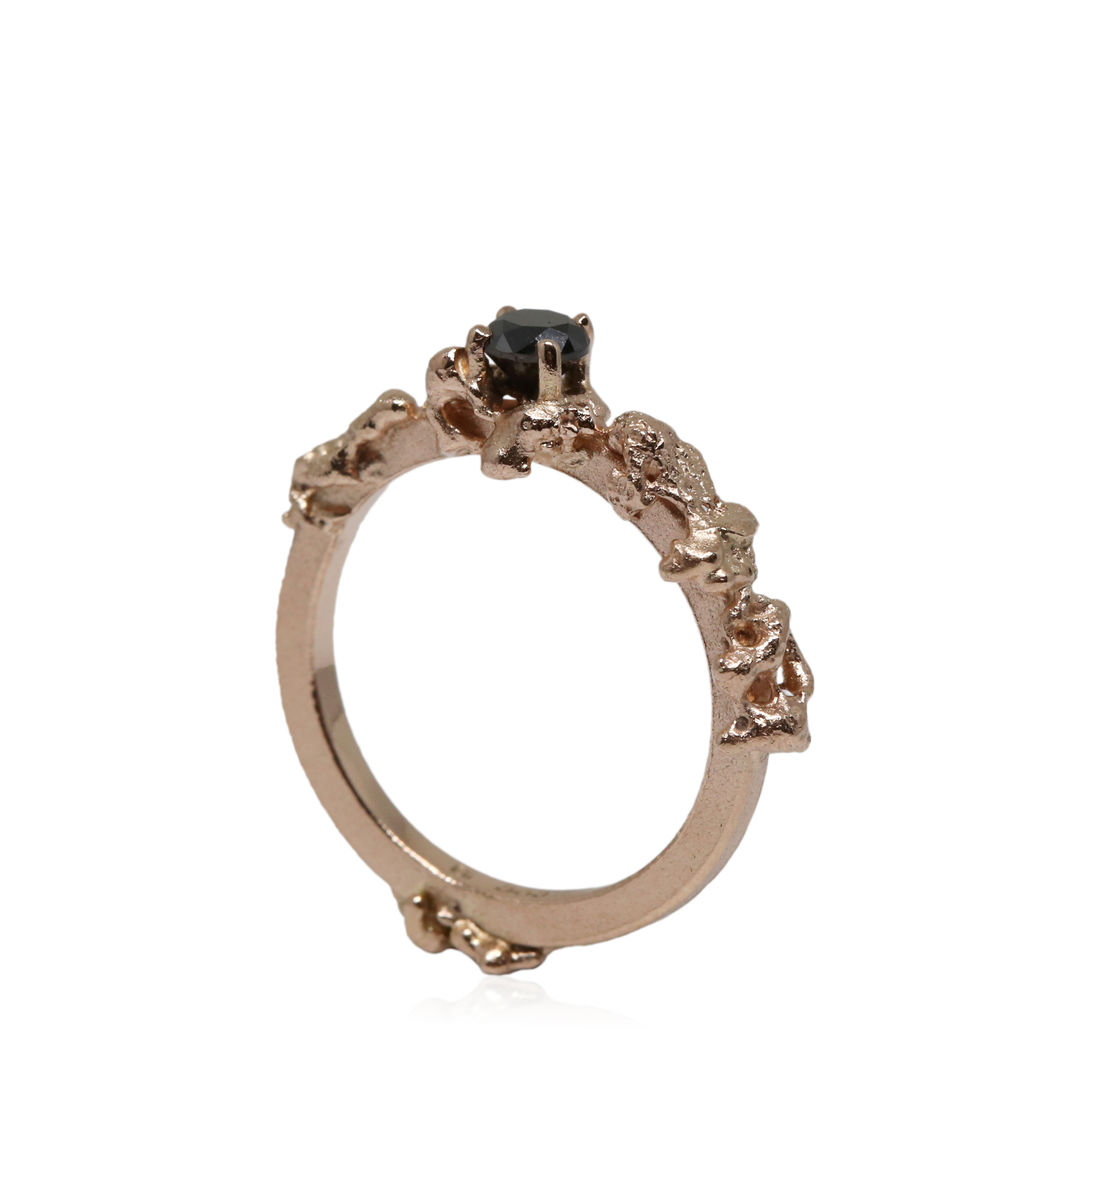 Out of the Sea Growth Ring in 14k rose gold with 0,25ct black diamond - product images  of